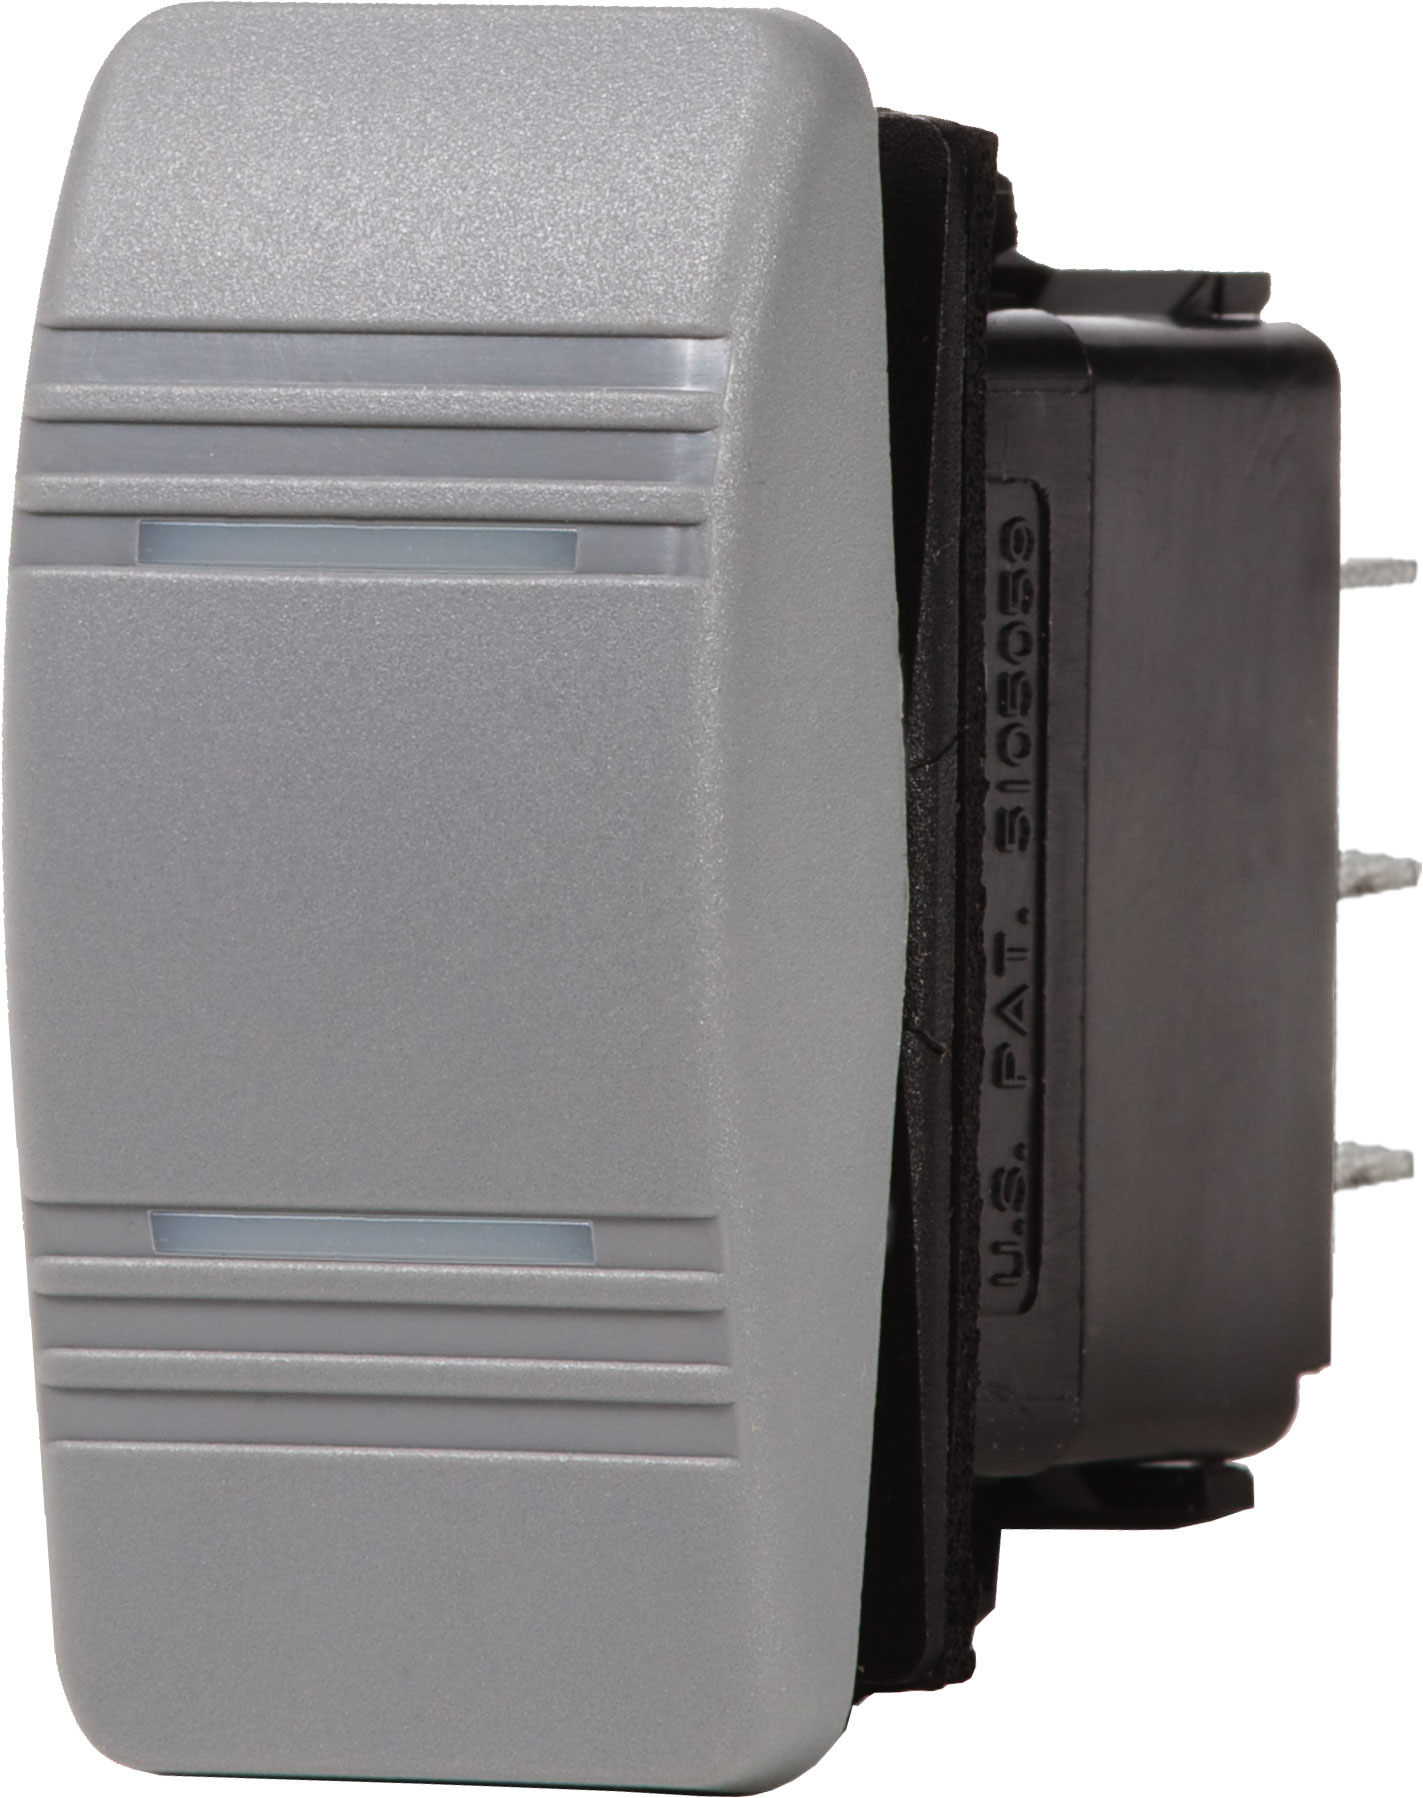 contura switch dpdt gray on on blue sea systems product image · switches contura switches